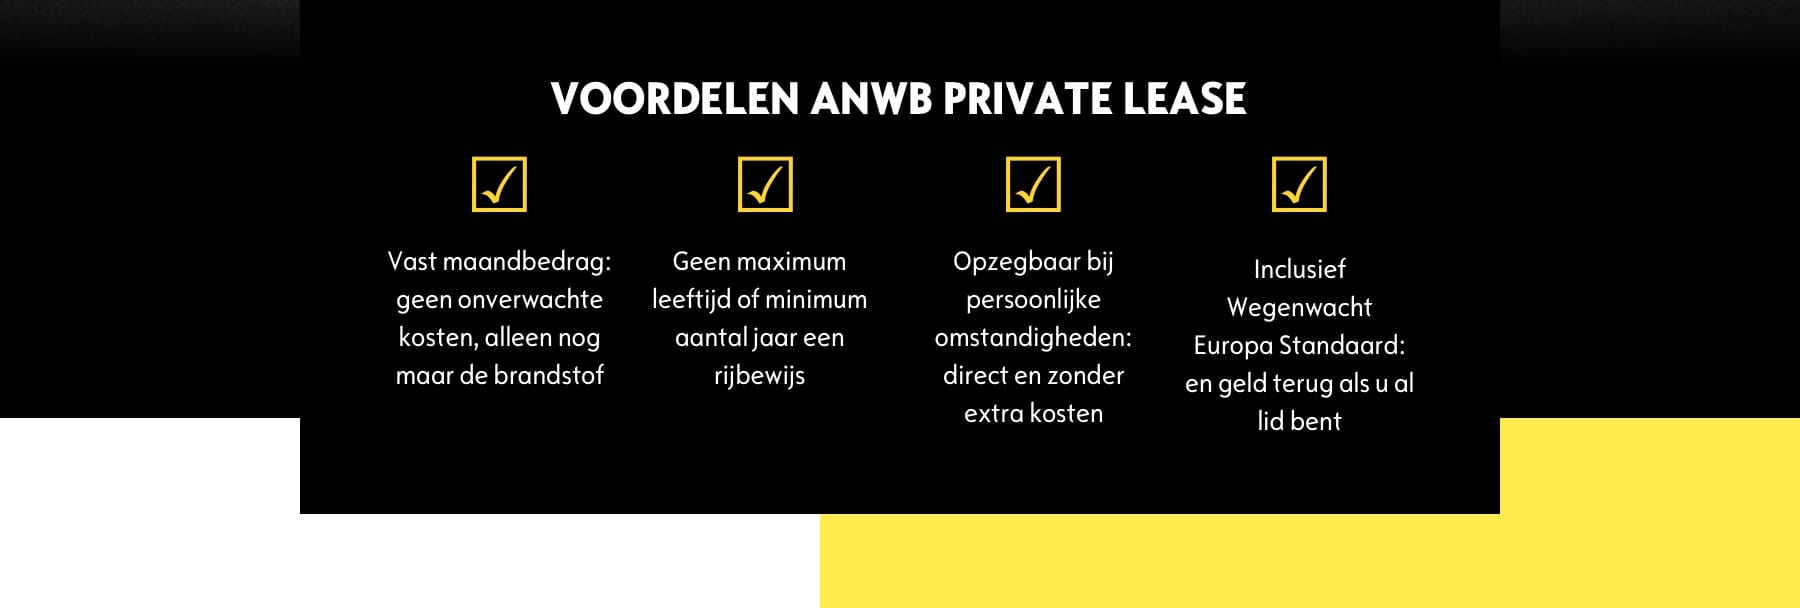 VOORDELEN ANWB PRIVATE LEASE